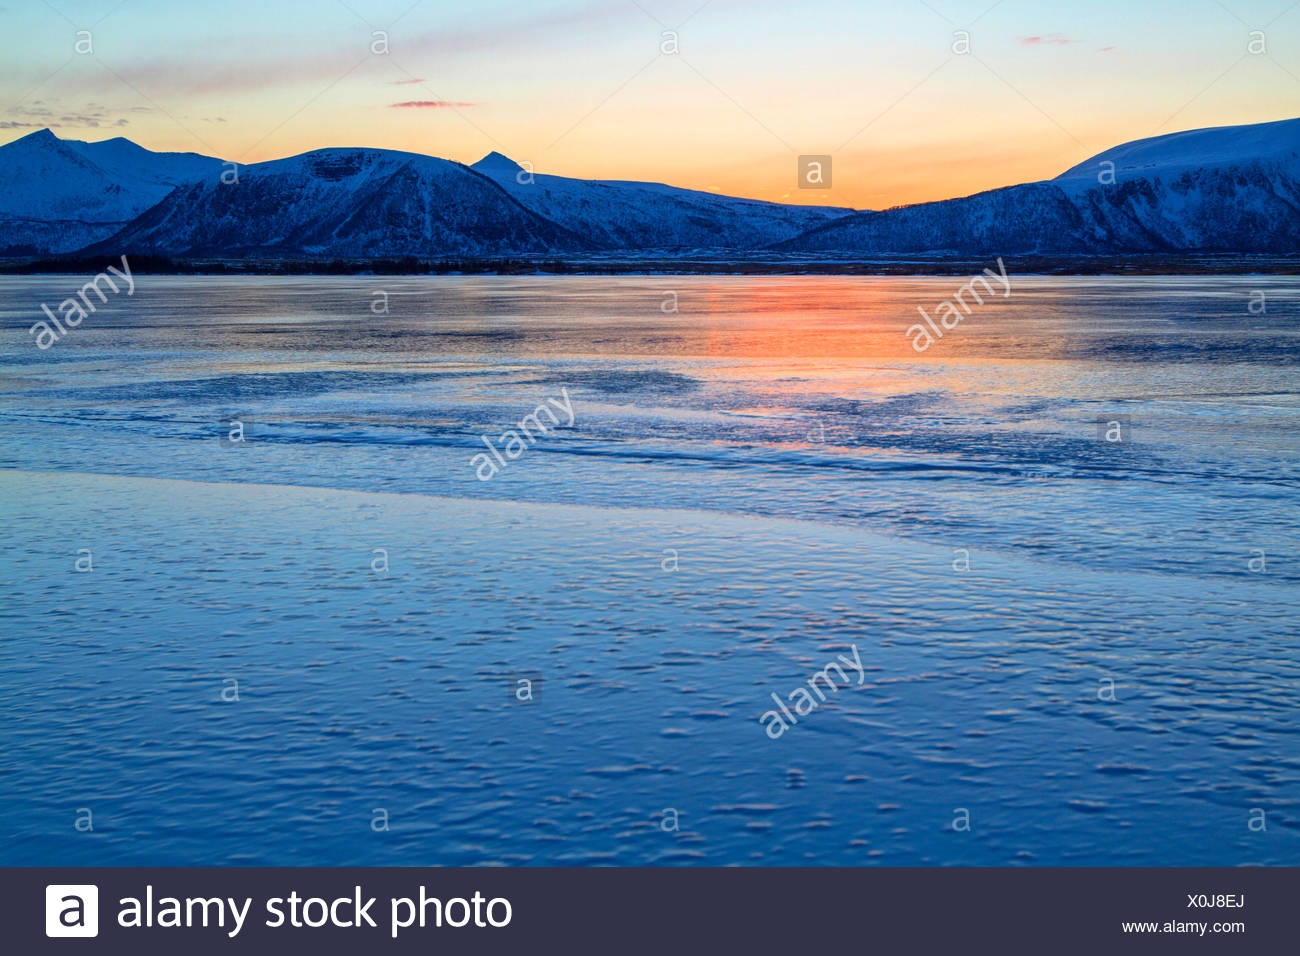 shine of the midnight sun mirroring on a frozen lake, Norway, Vester�len, Insel And�ya, Andenes - Stock Image